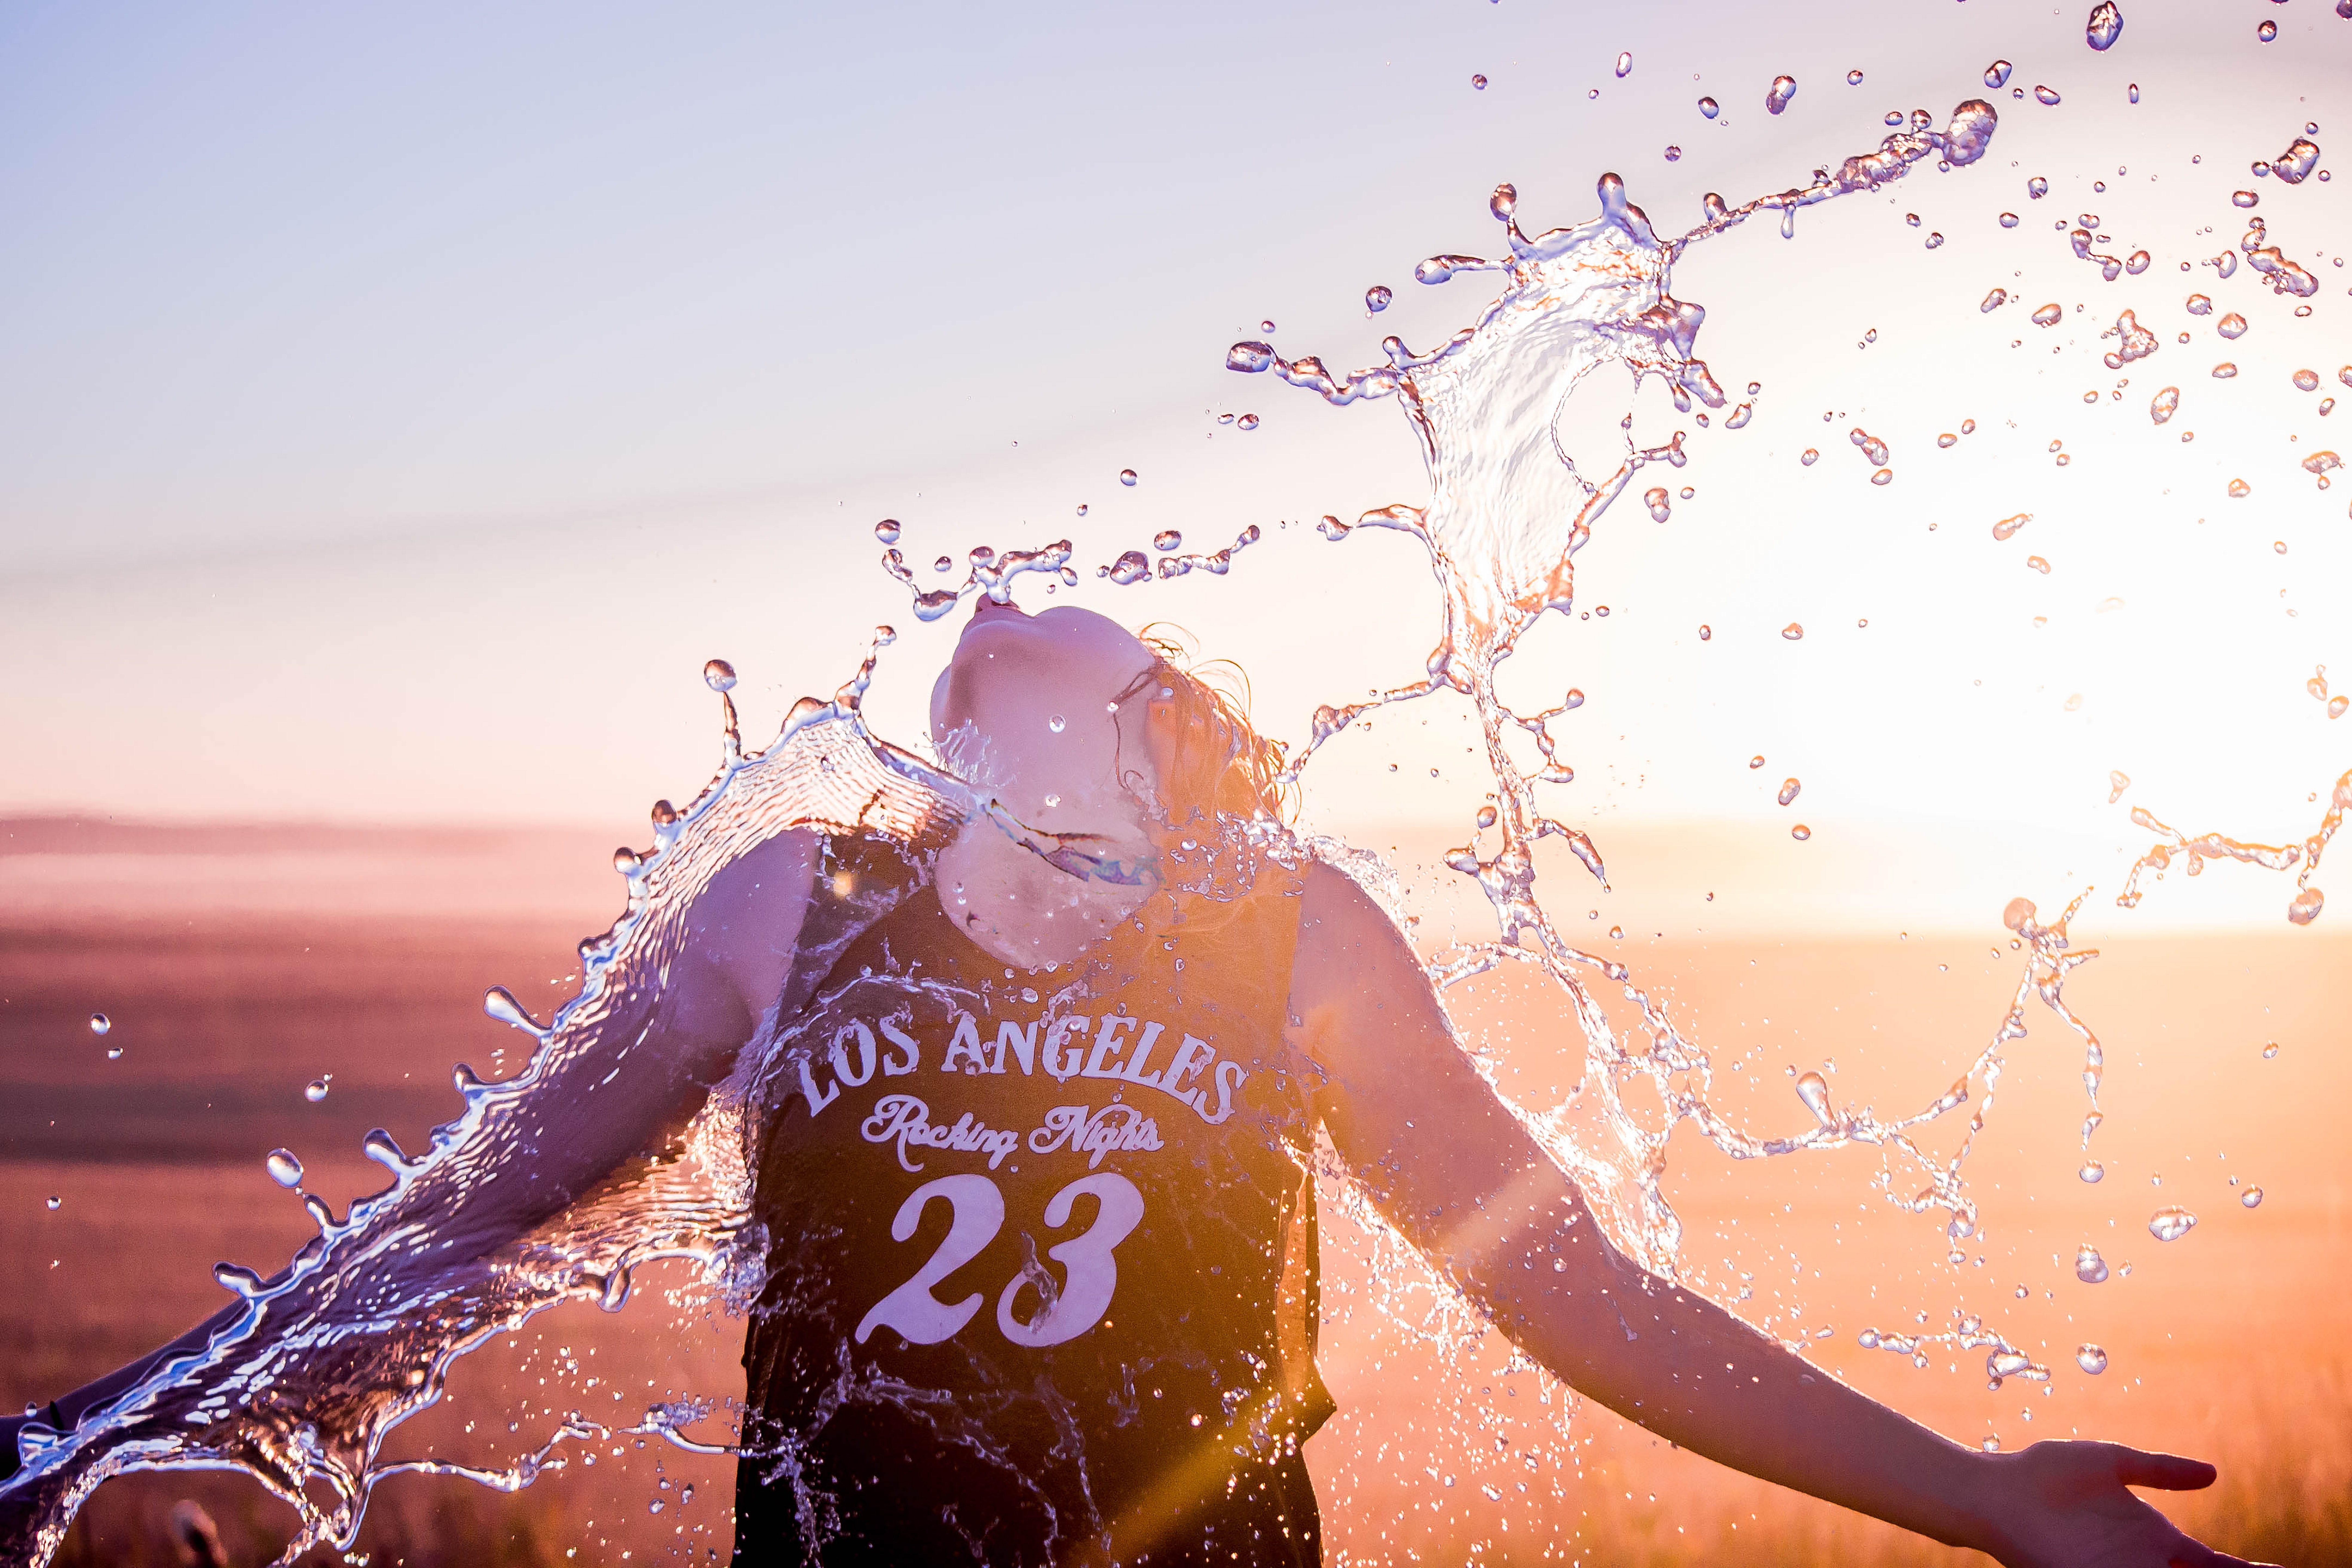 Female wearing a Los Angeles jersey being splashed with water under the sunset in Alberta